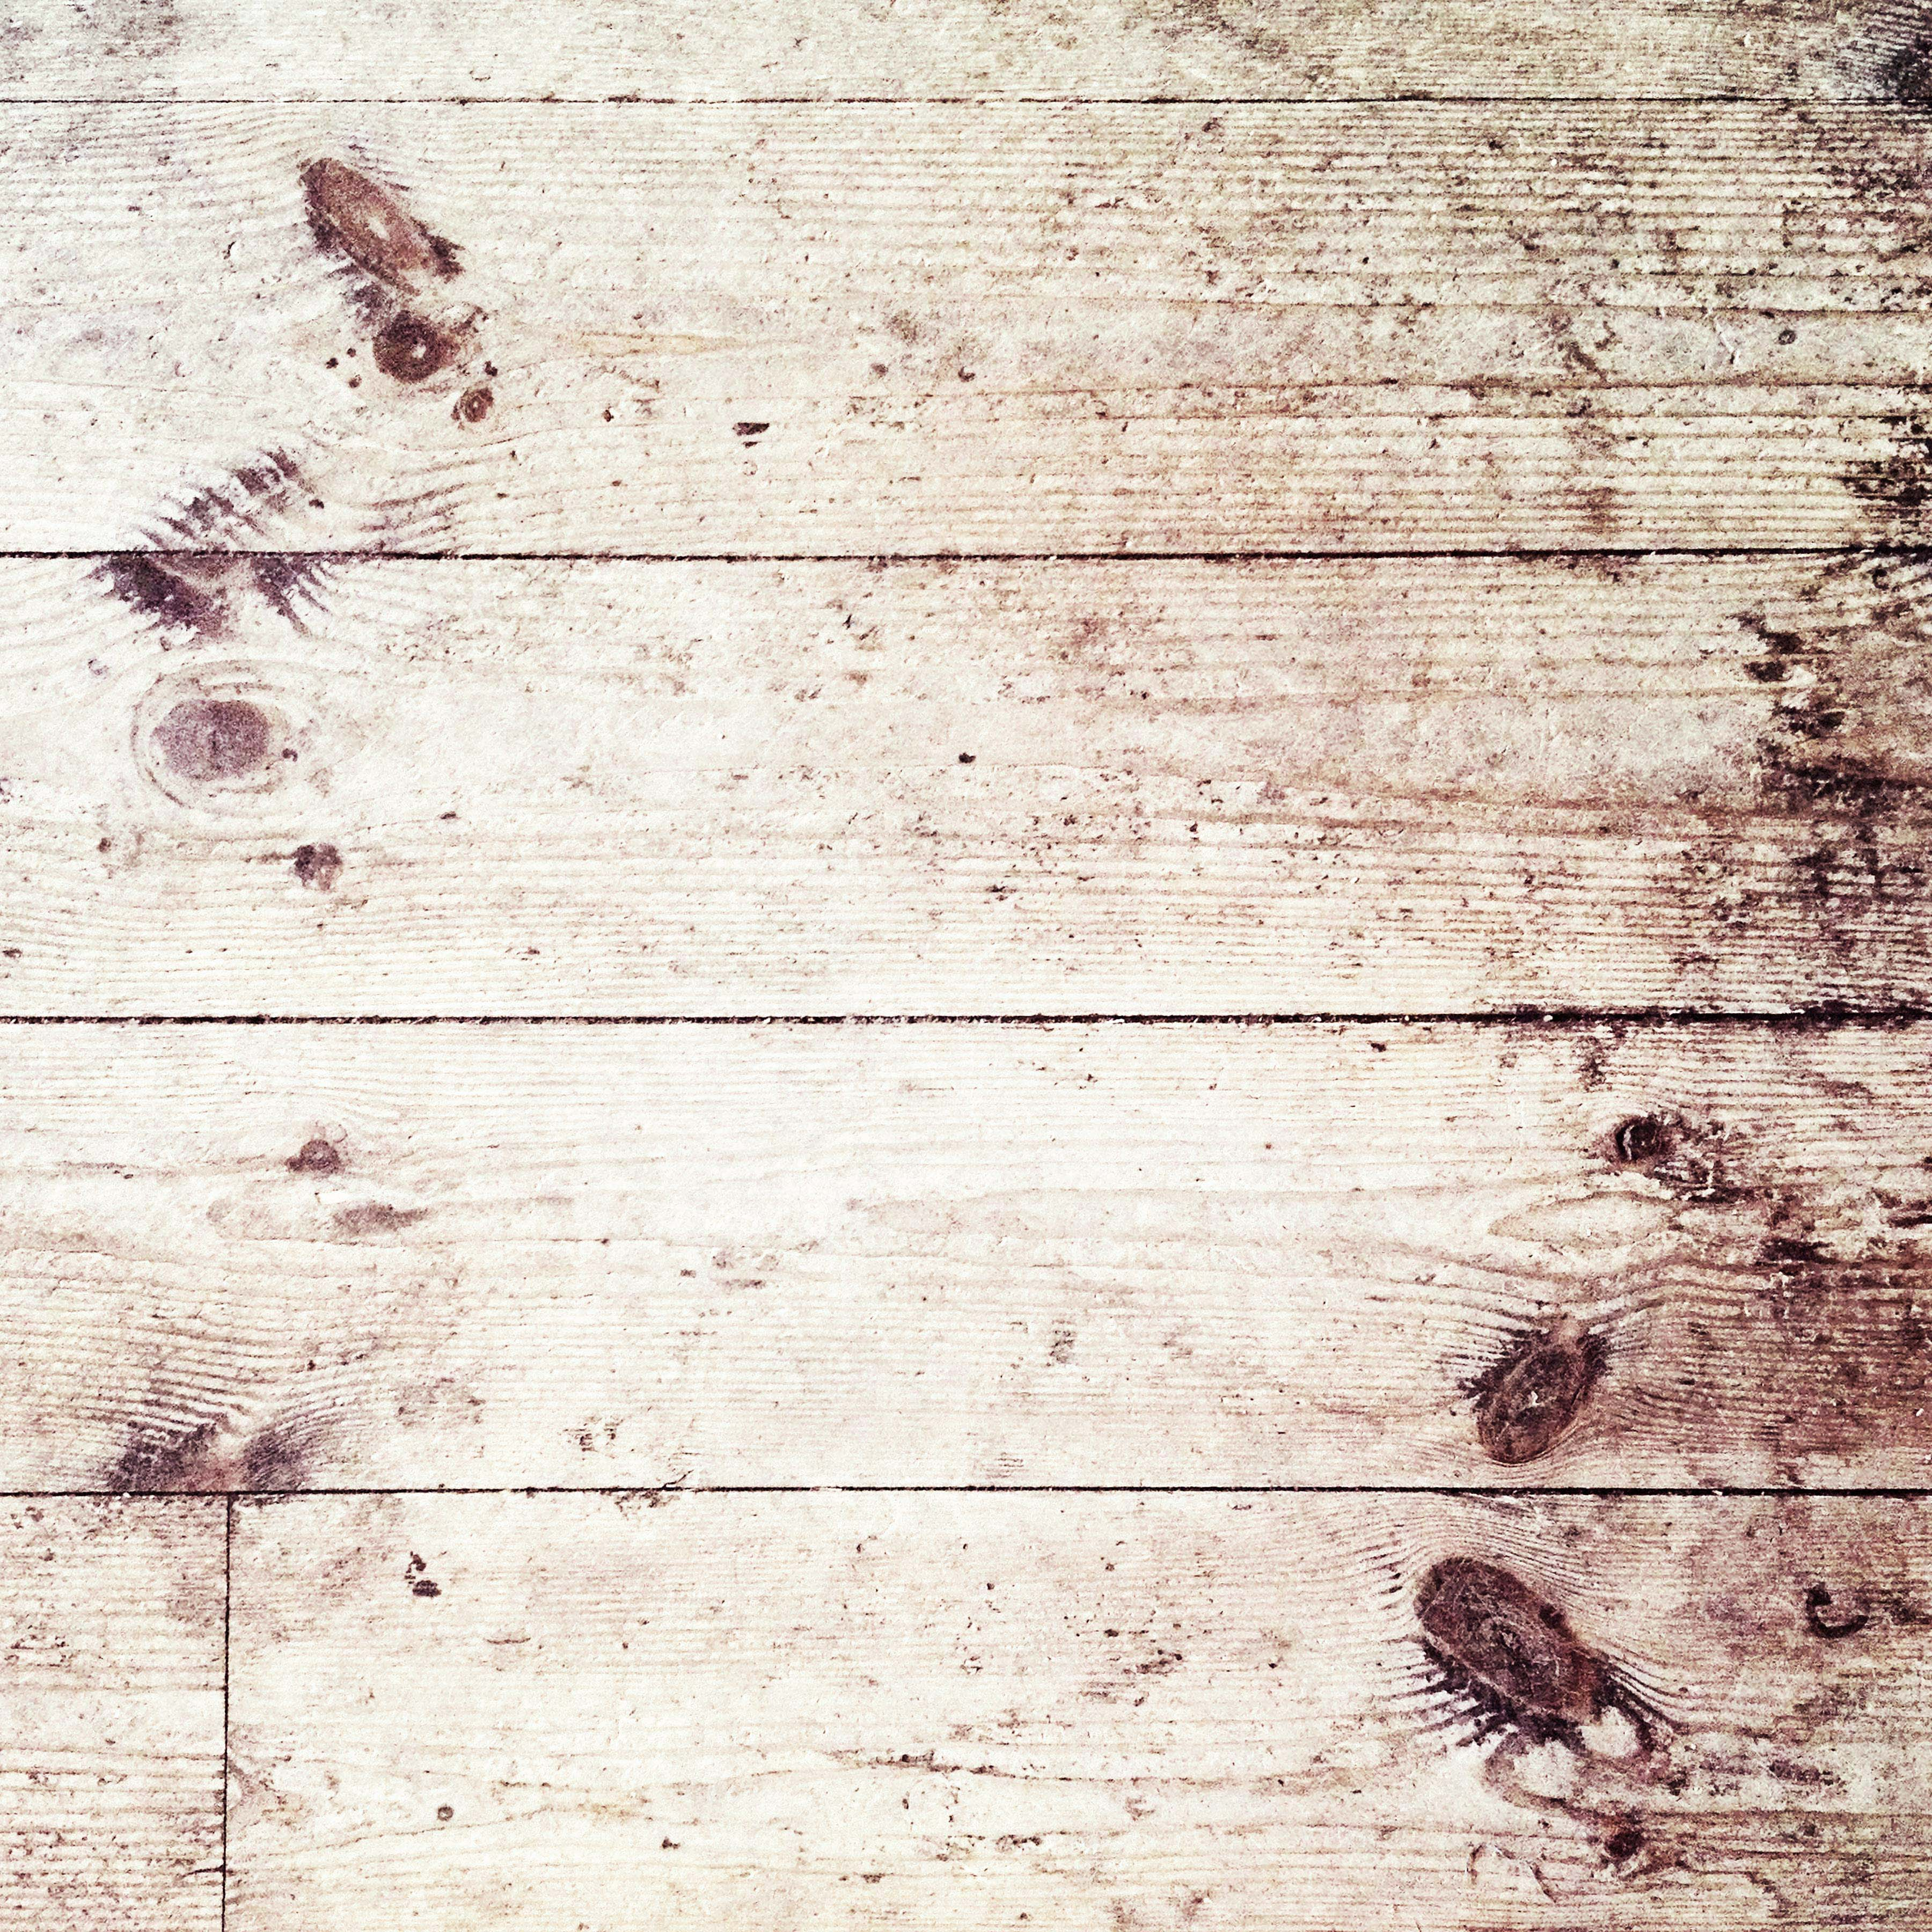 Wood Surface, Abstract, Smooth, Material, Nature, HQ Photo